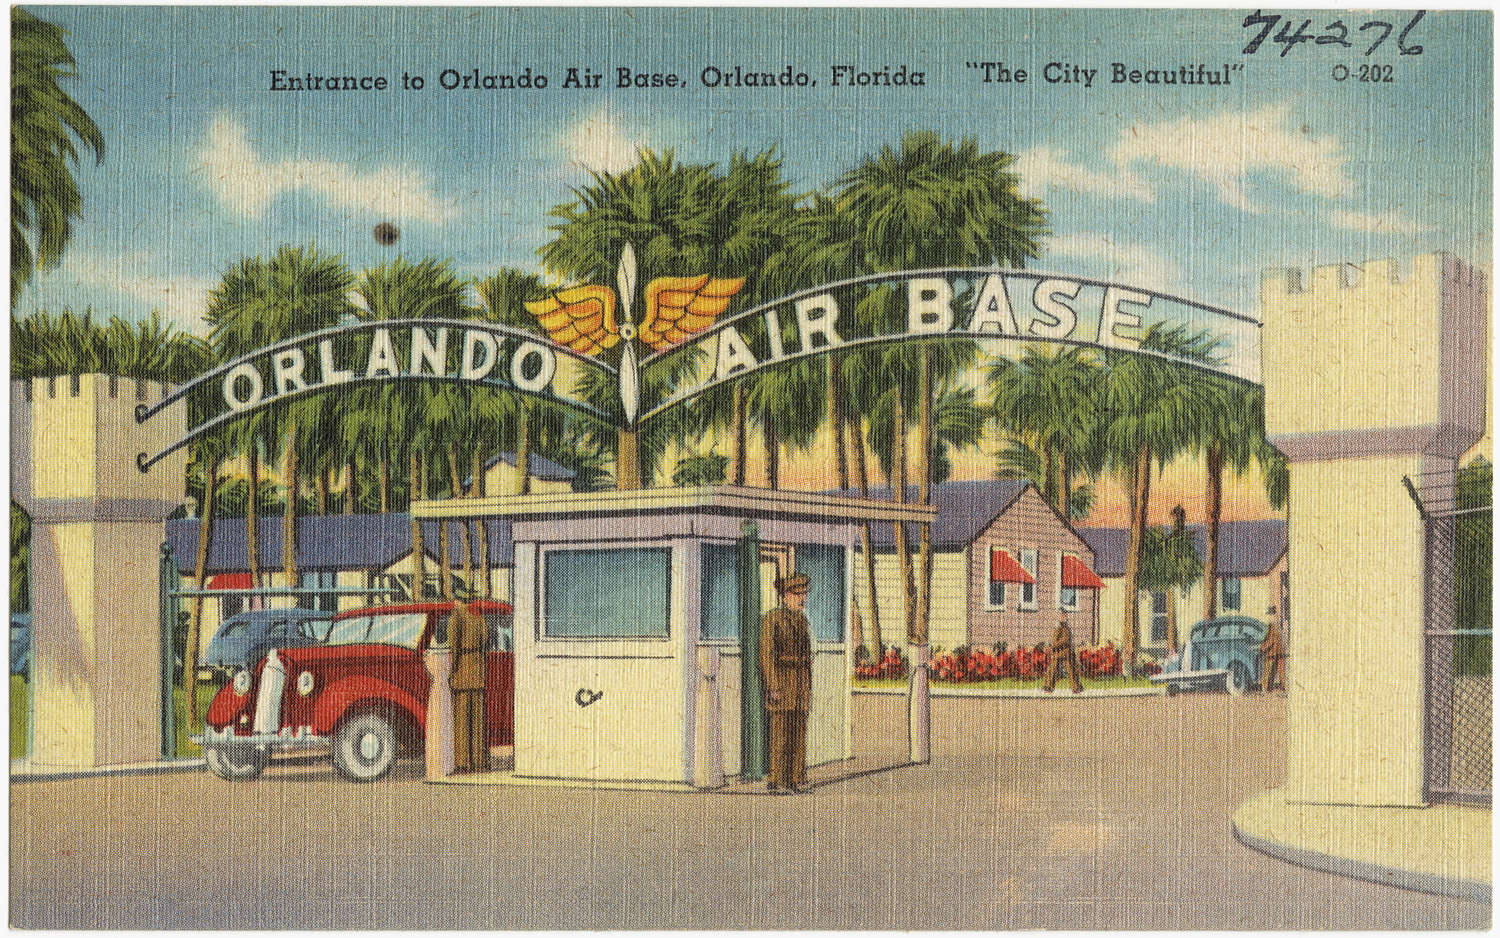 Entrance to Orlando Air Base